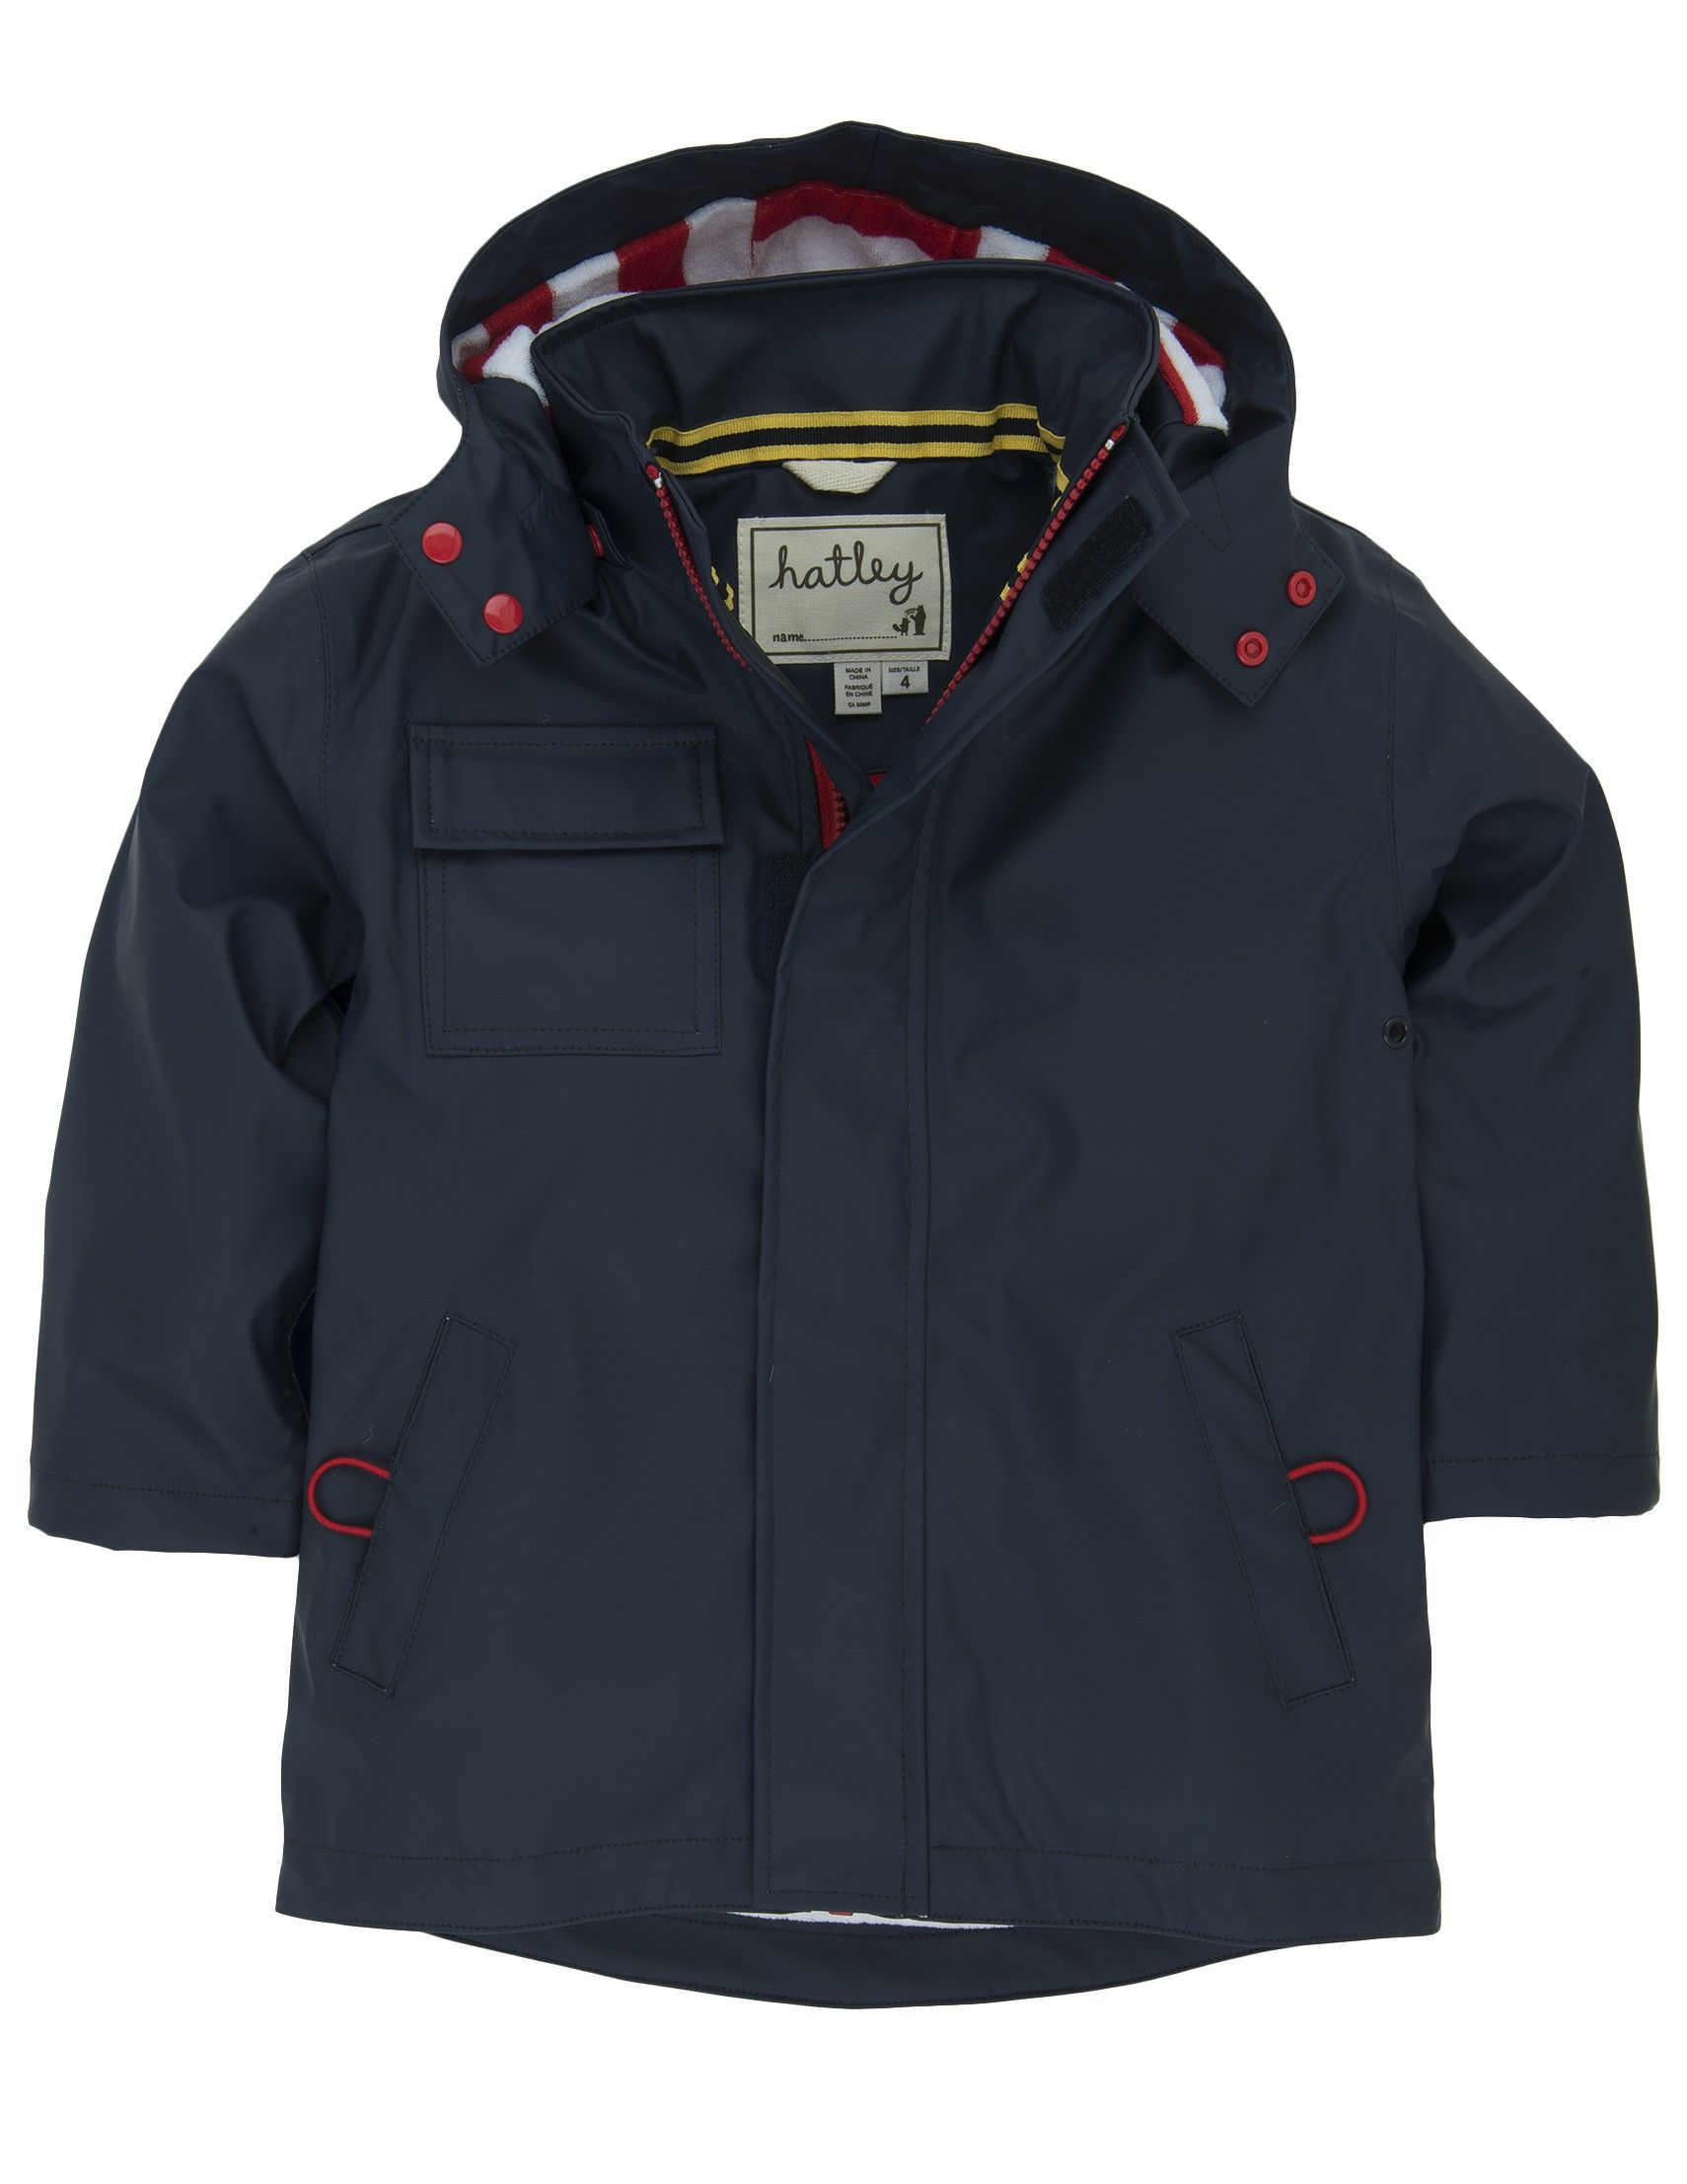 Classic Navy Splash Jacket - Raincoats - Rain Gear - Boys  be530f637